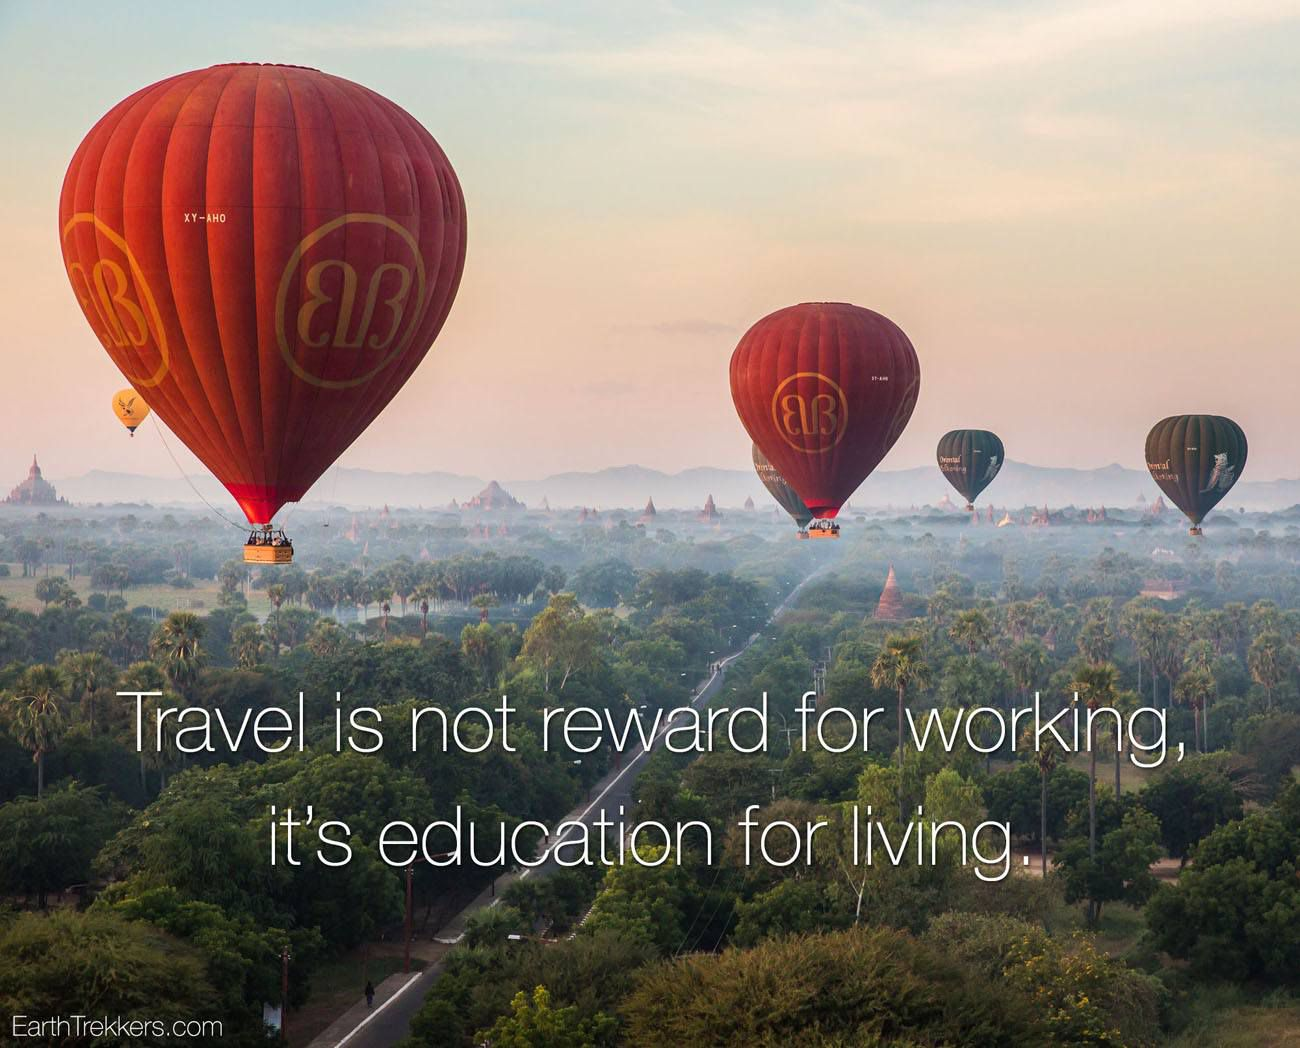 Travel is education for living